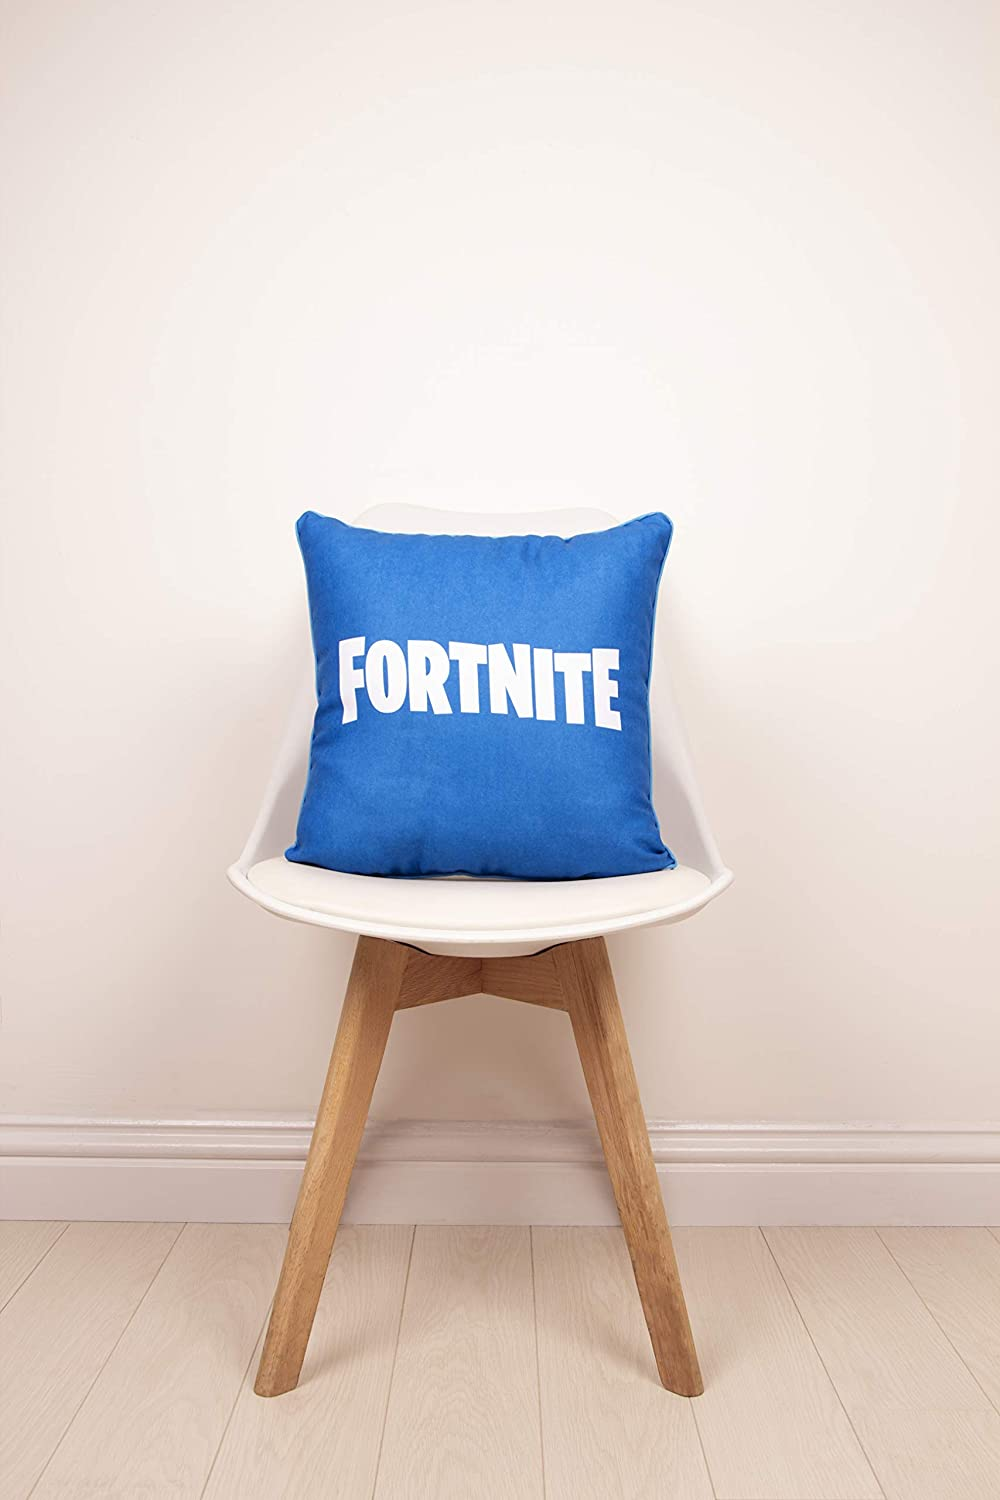 fortnite official square cushion pillow officially licensed super soft two sided emotes design perfect for any children s room or bedroom blue